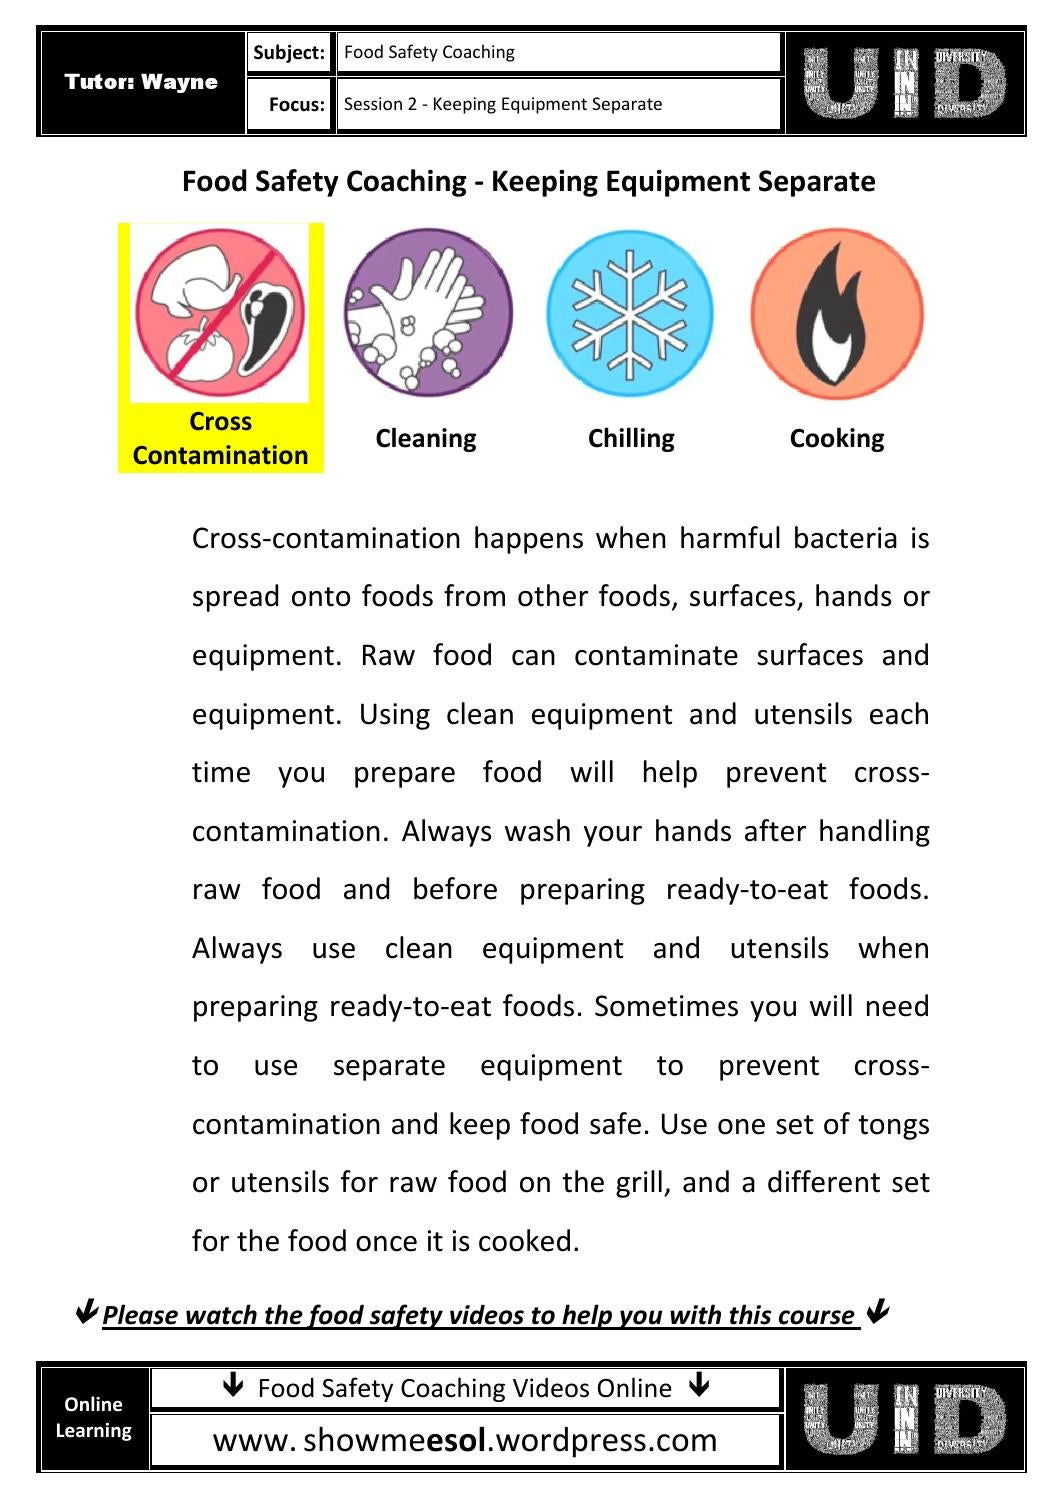 02 Worksheets Food Safety Coaching Keeping Equipment